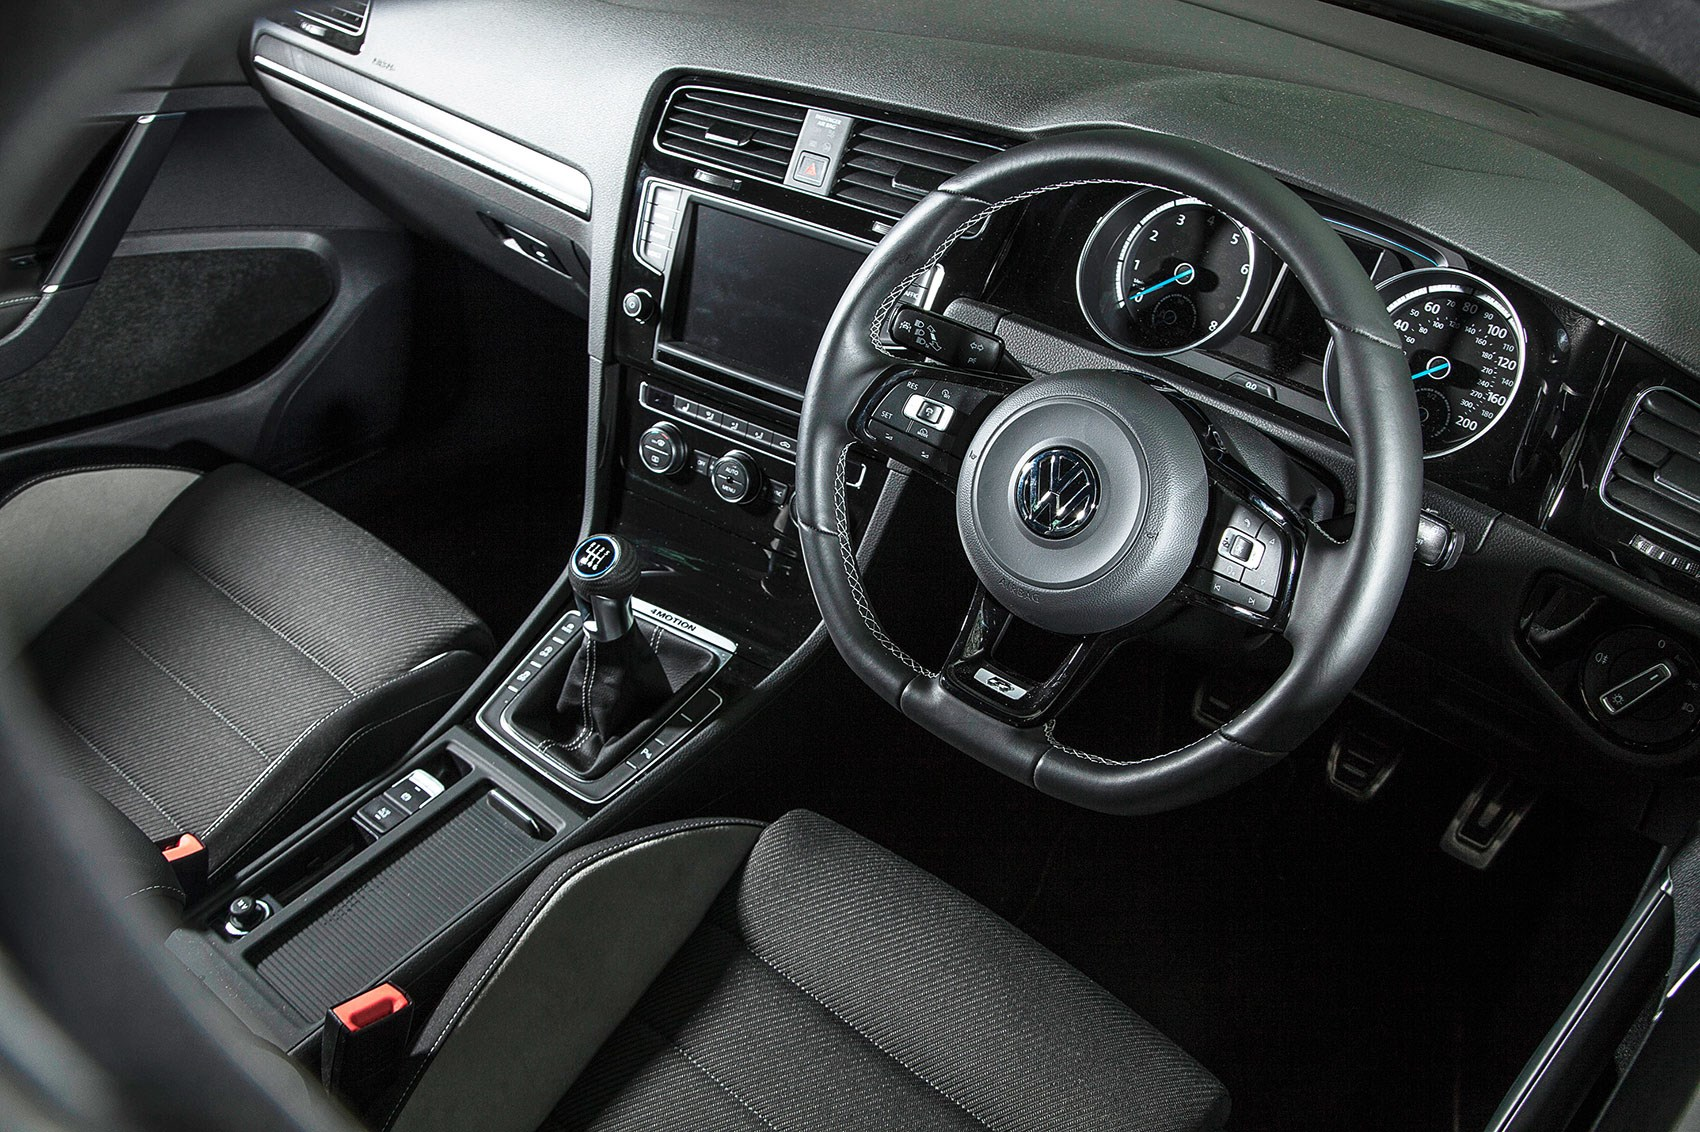 Vw Golf R 2016 Long Term Test Review Car Magazine Forum O View Topic Mini Max Wiring With Steering Wheel Push Button Electric Blue Dial Needles About As Frivolous The Interior Gets